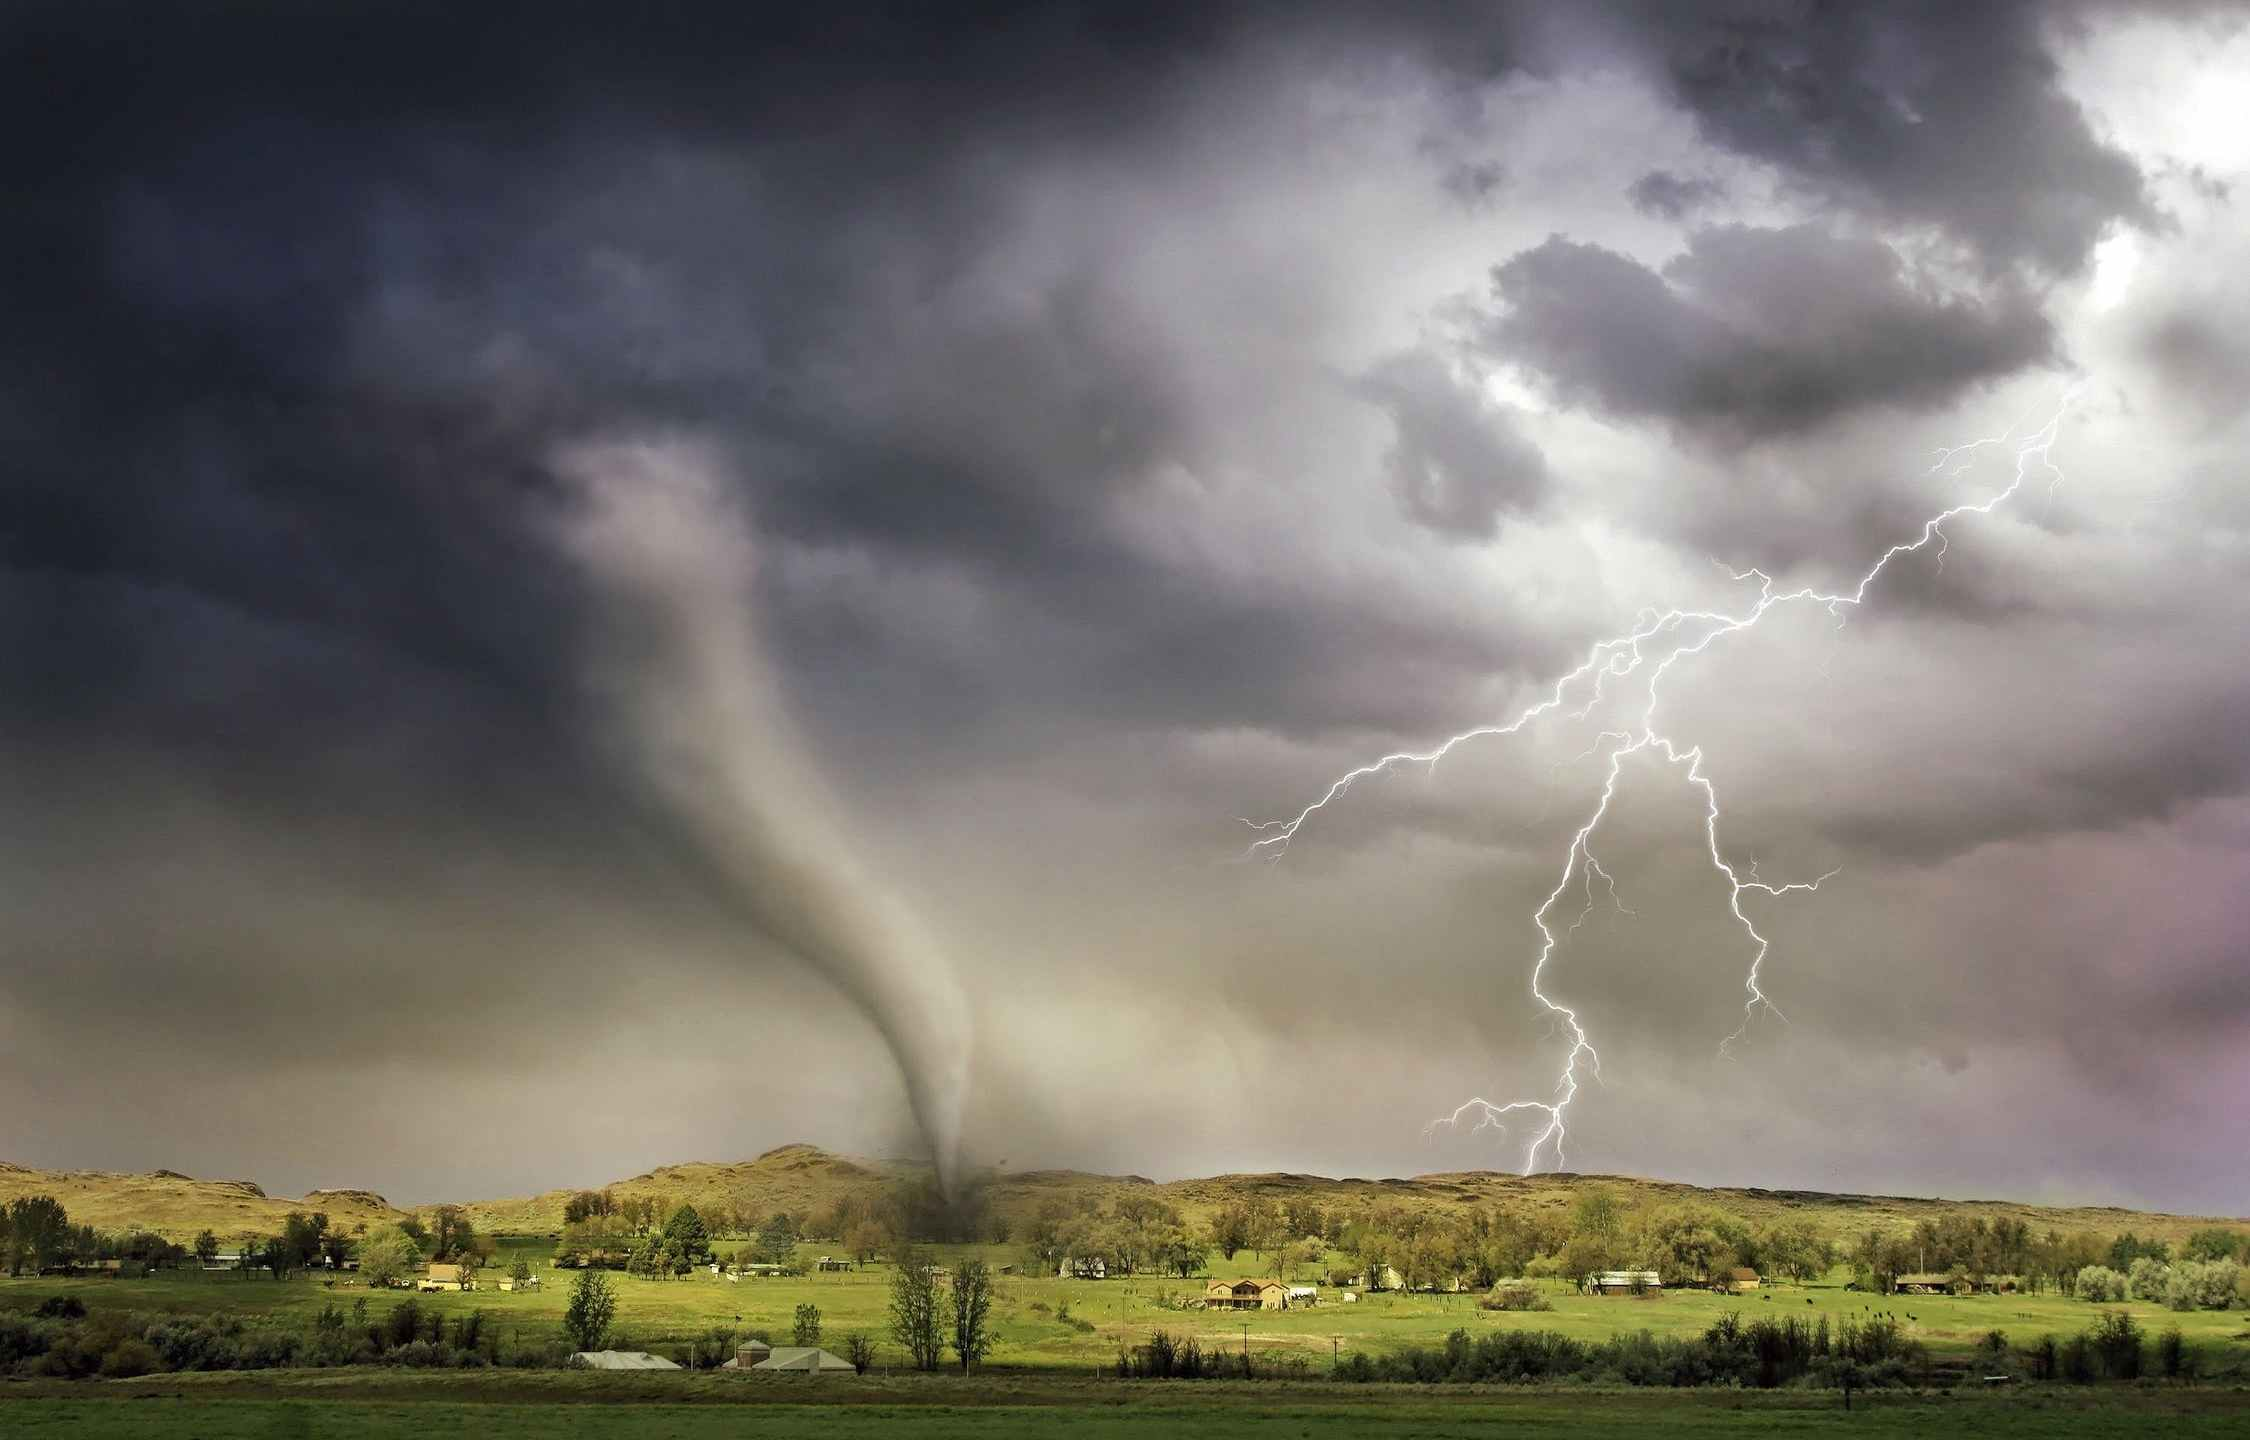 Learn the difference between a Tornado 'Watch' and Tornado